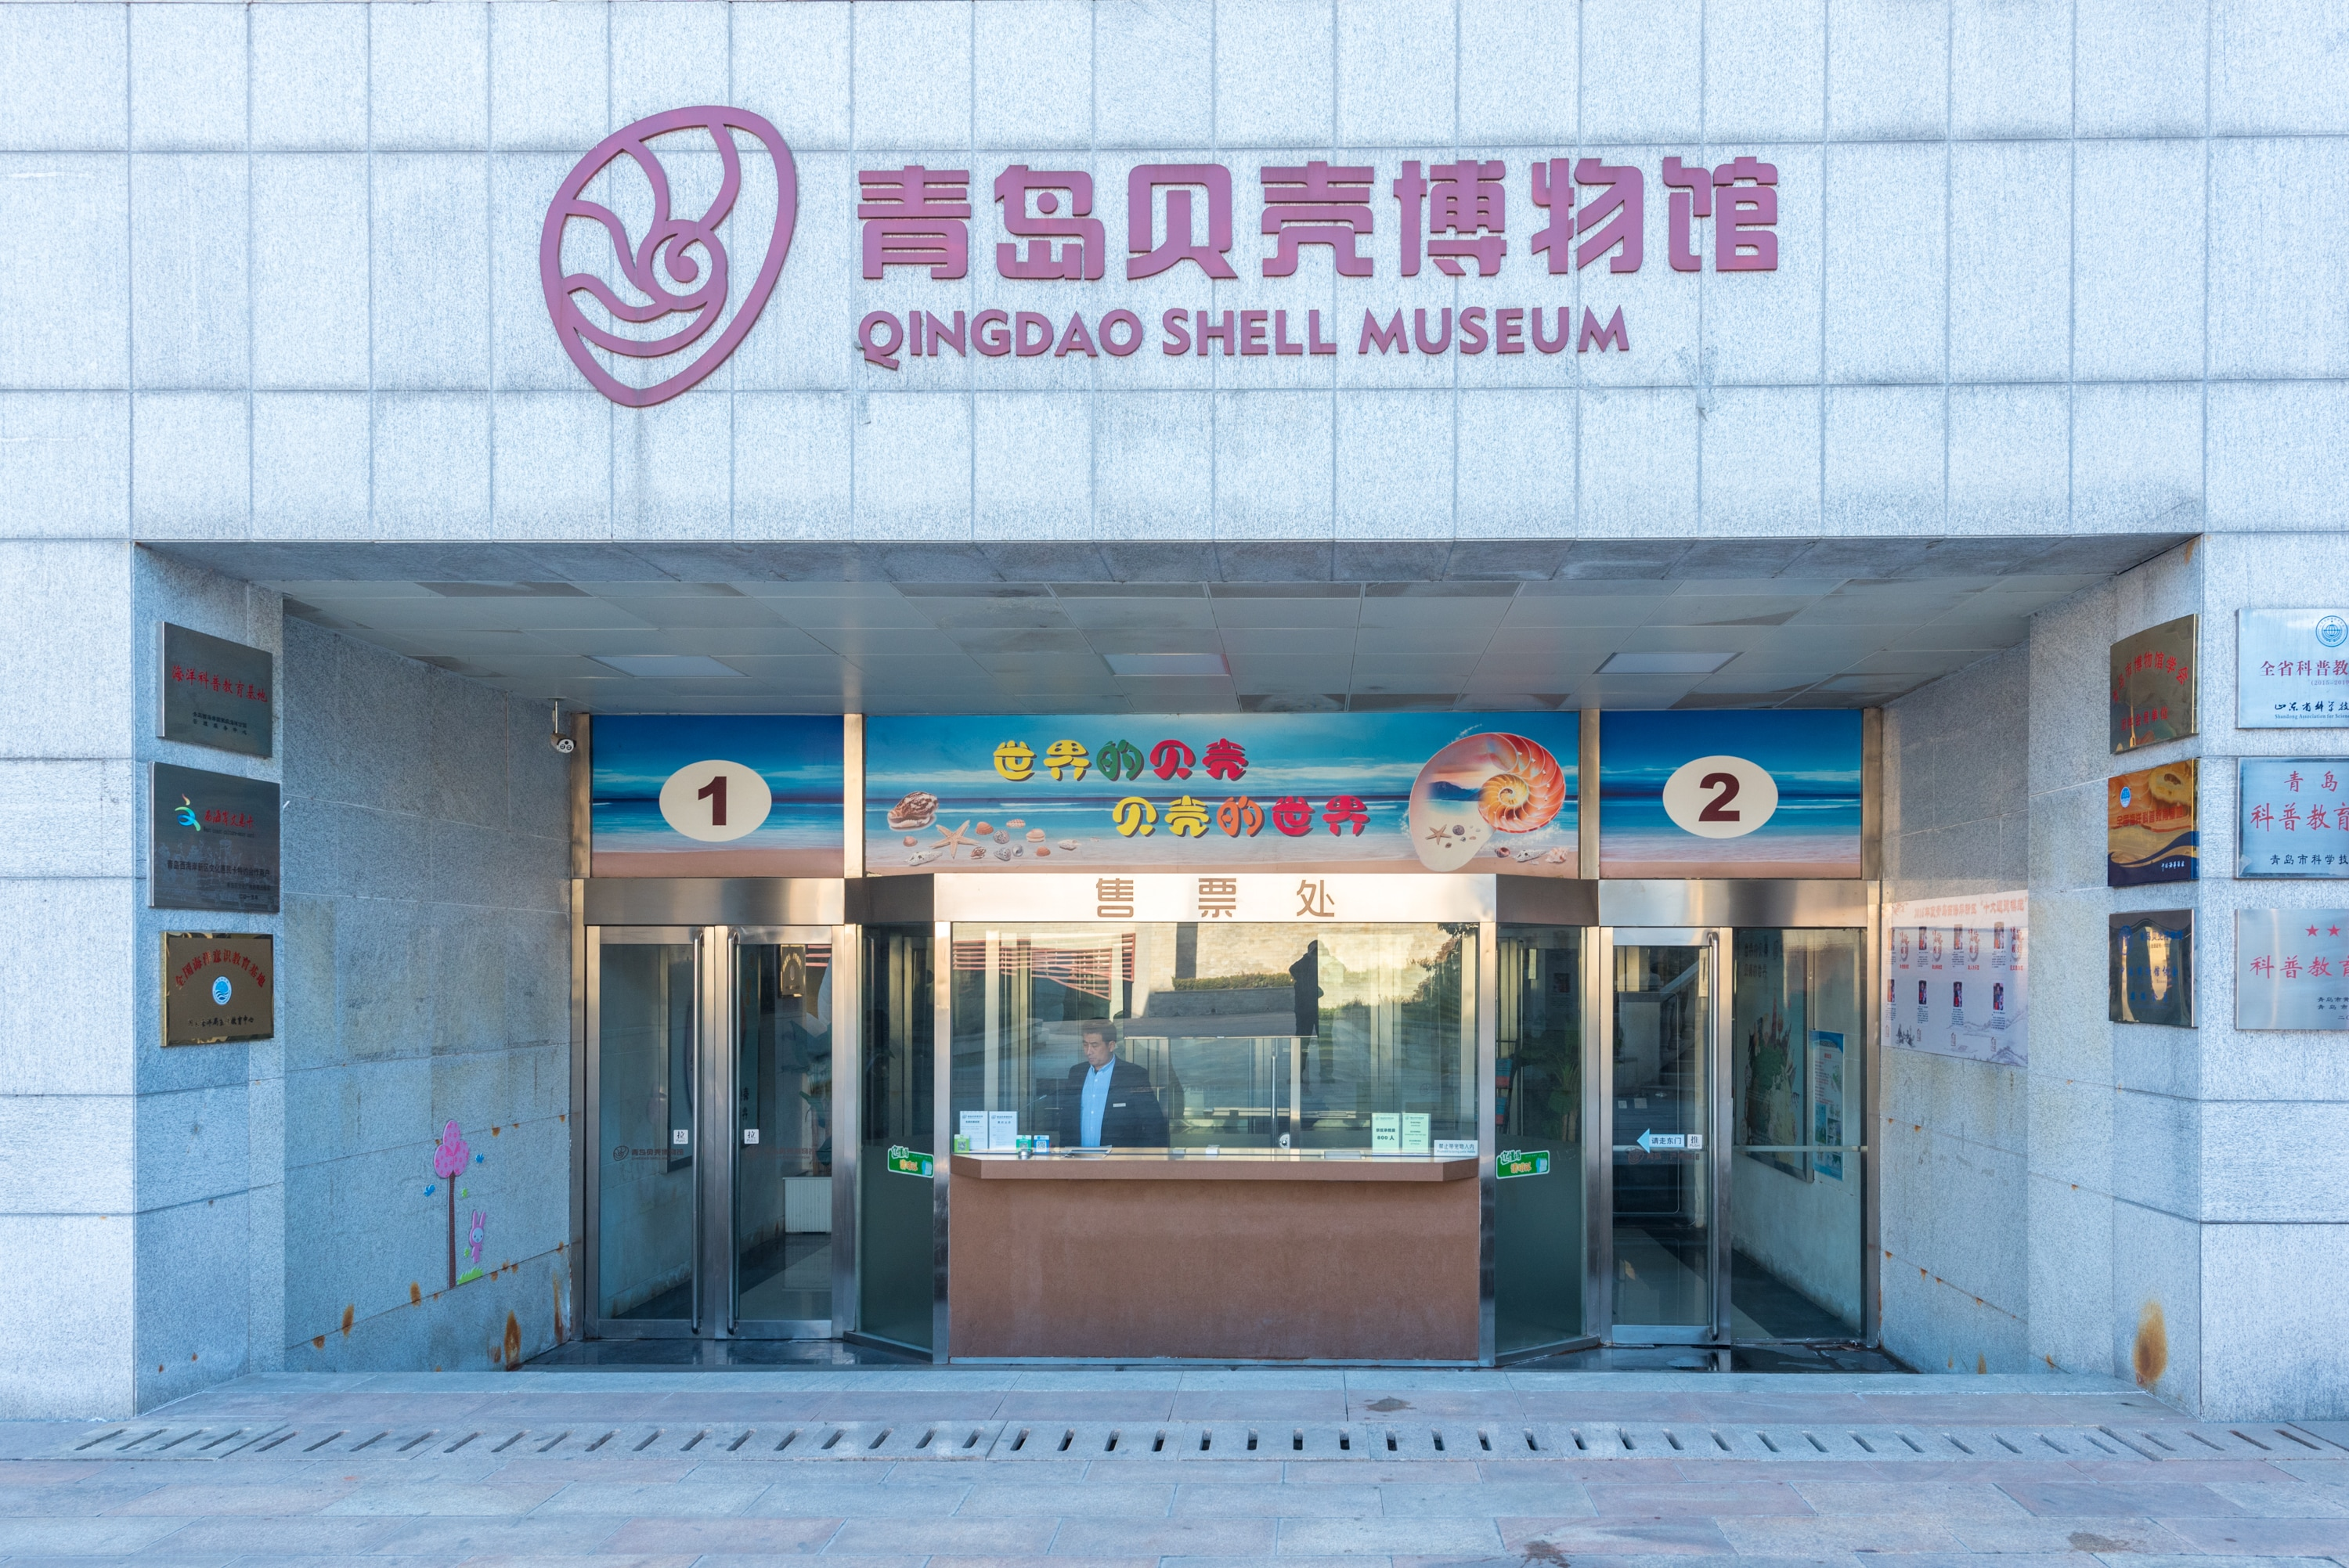 Qingdao Shell Museum Admission Ticket